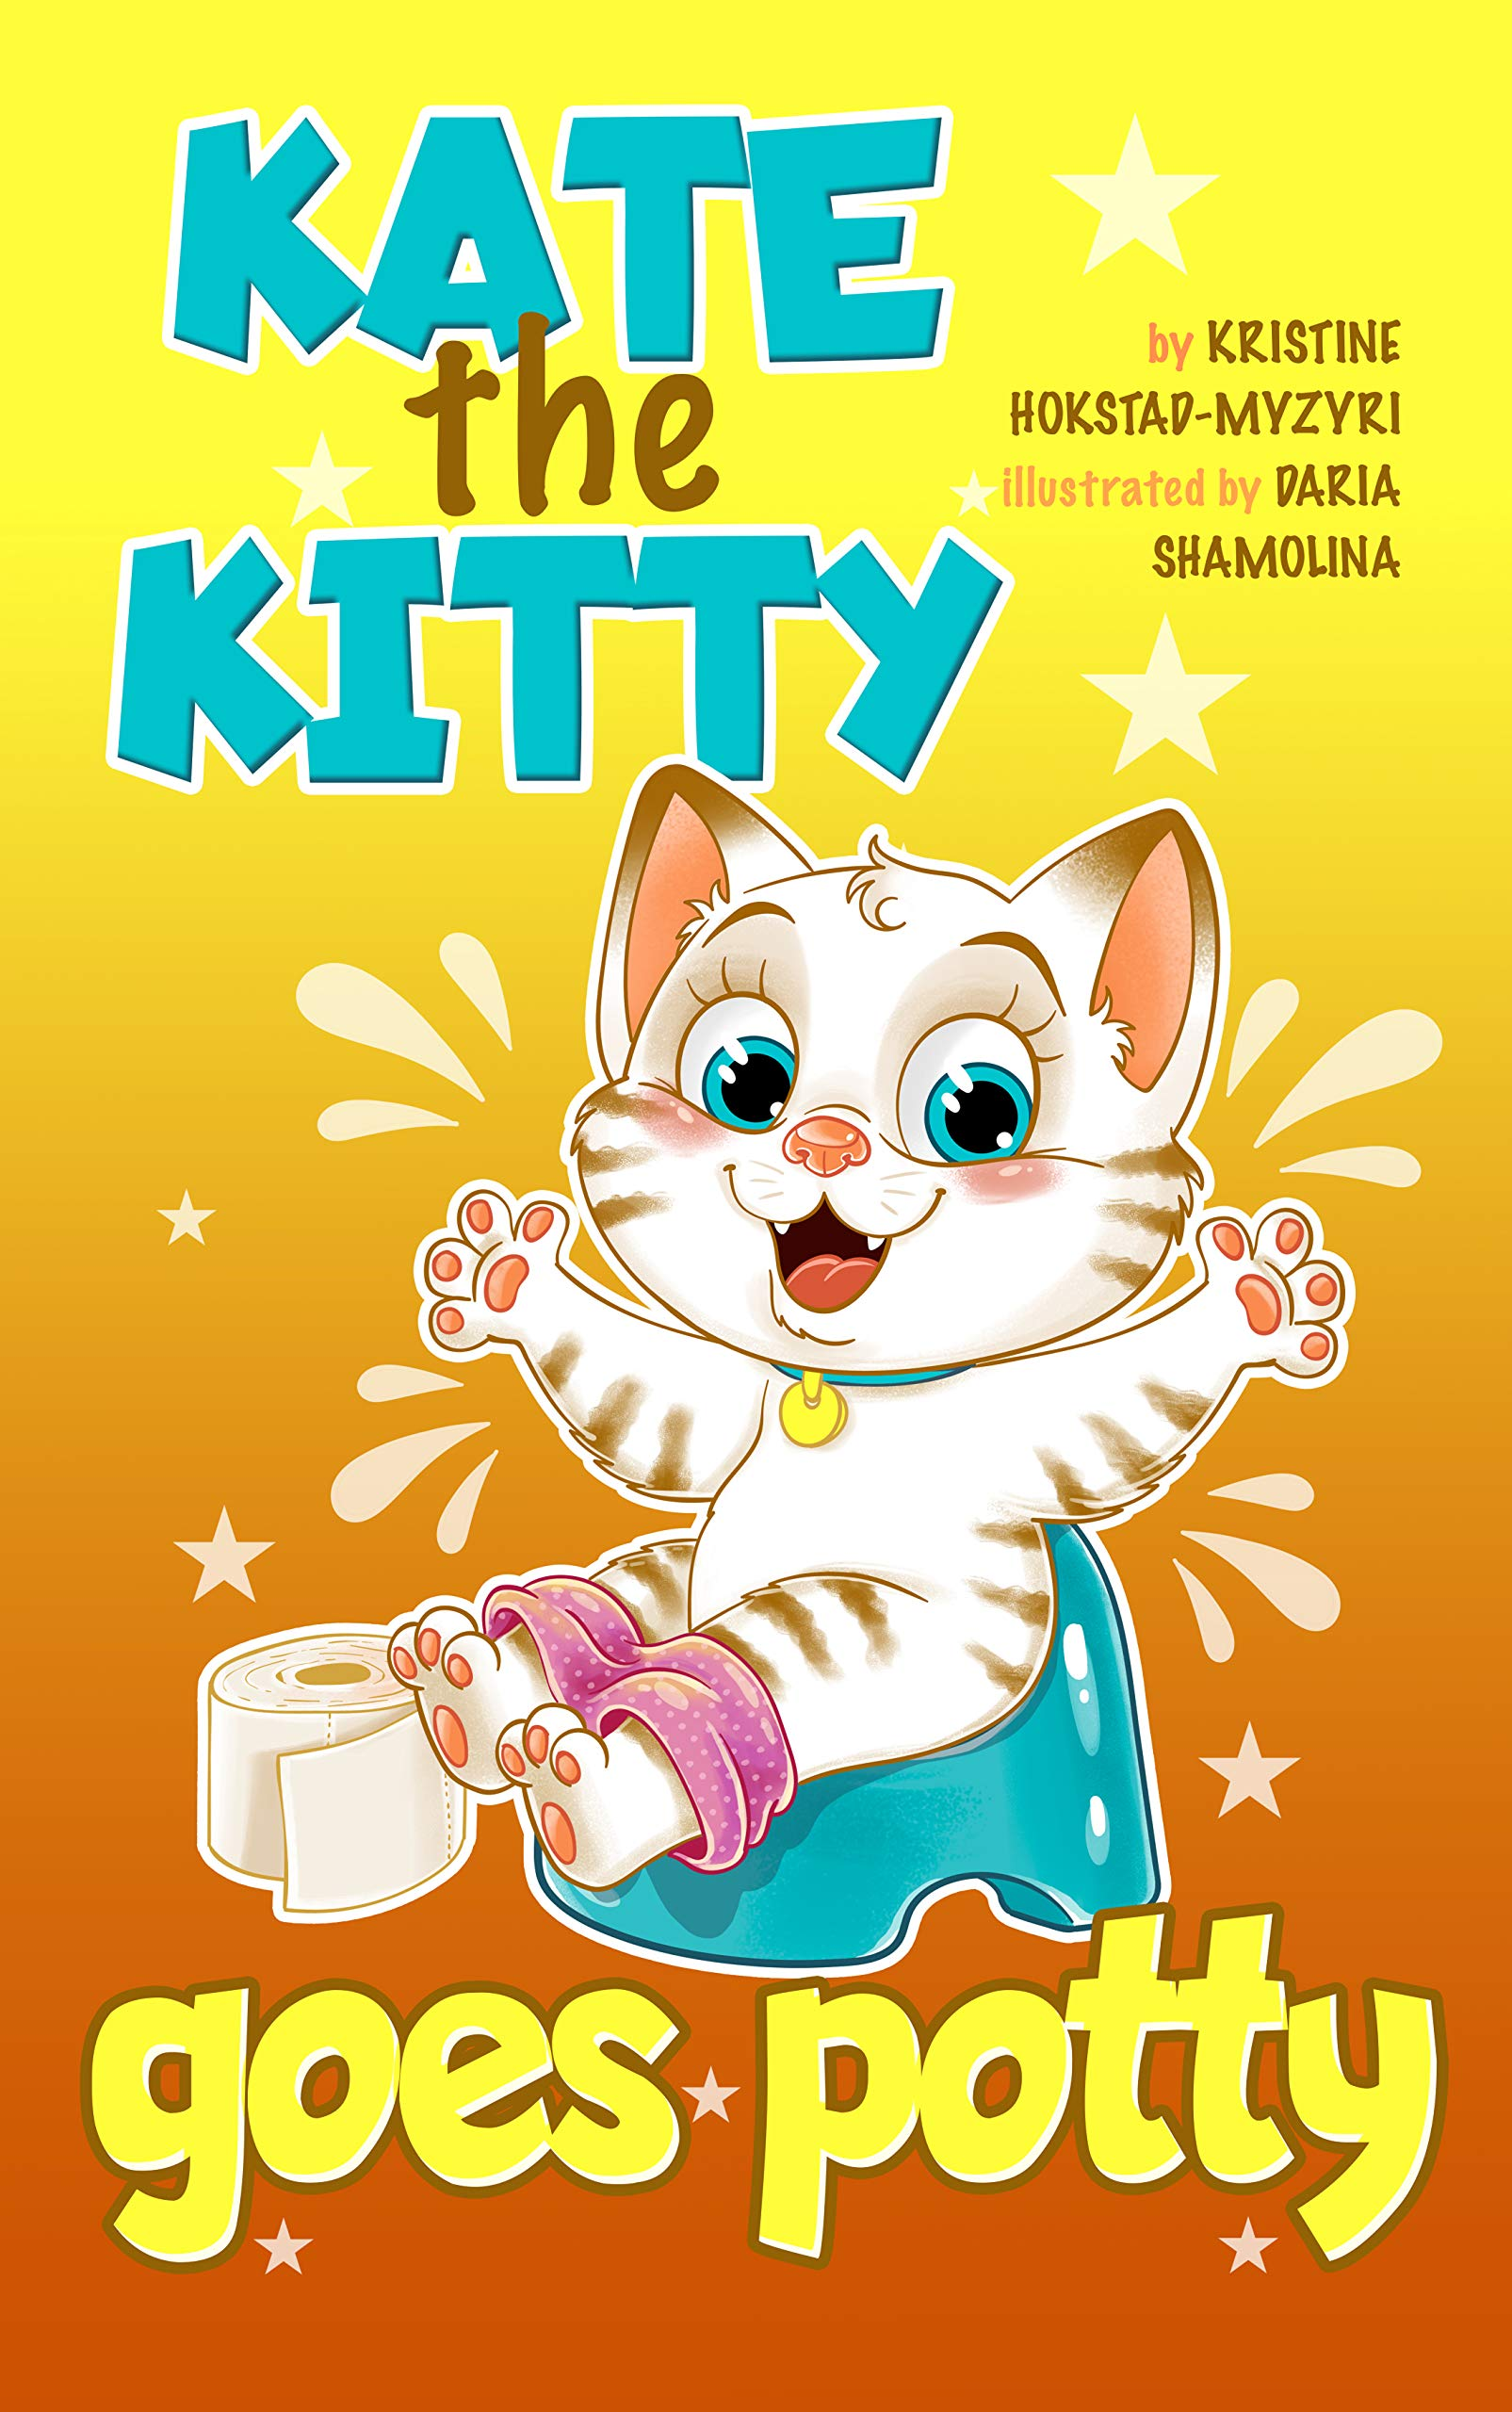 Kate the kitty goes potty : learn to interpret bodily sensations. Children's book about potty training, children books ages 1 2 3 4, kids books, babyshower gifts, preschool books, babies, baby gift